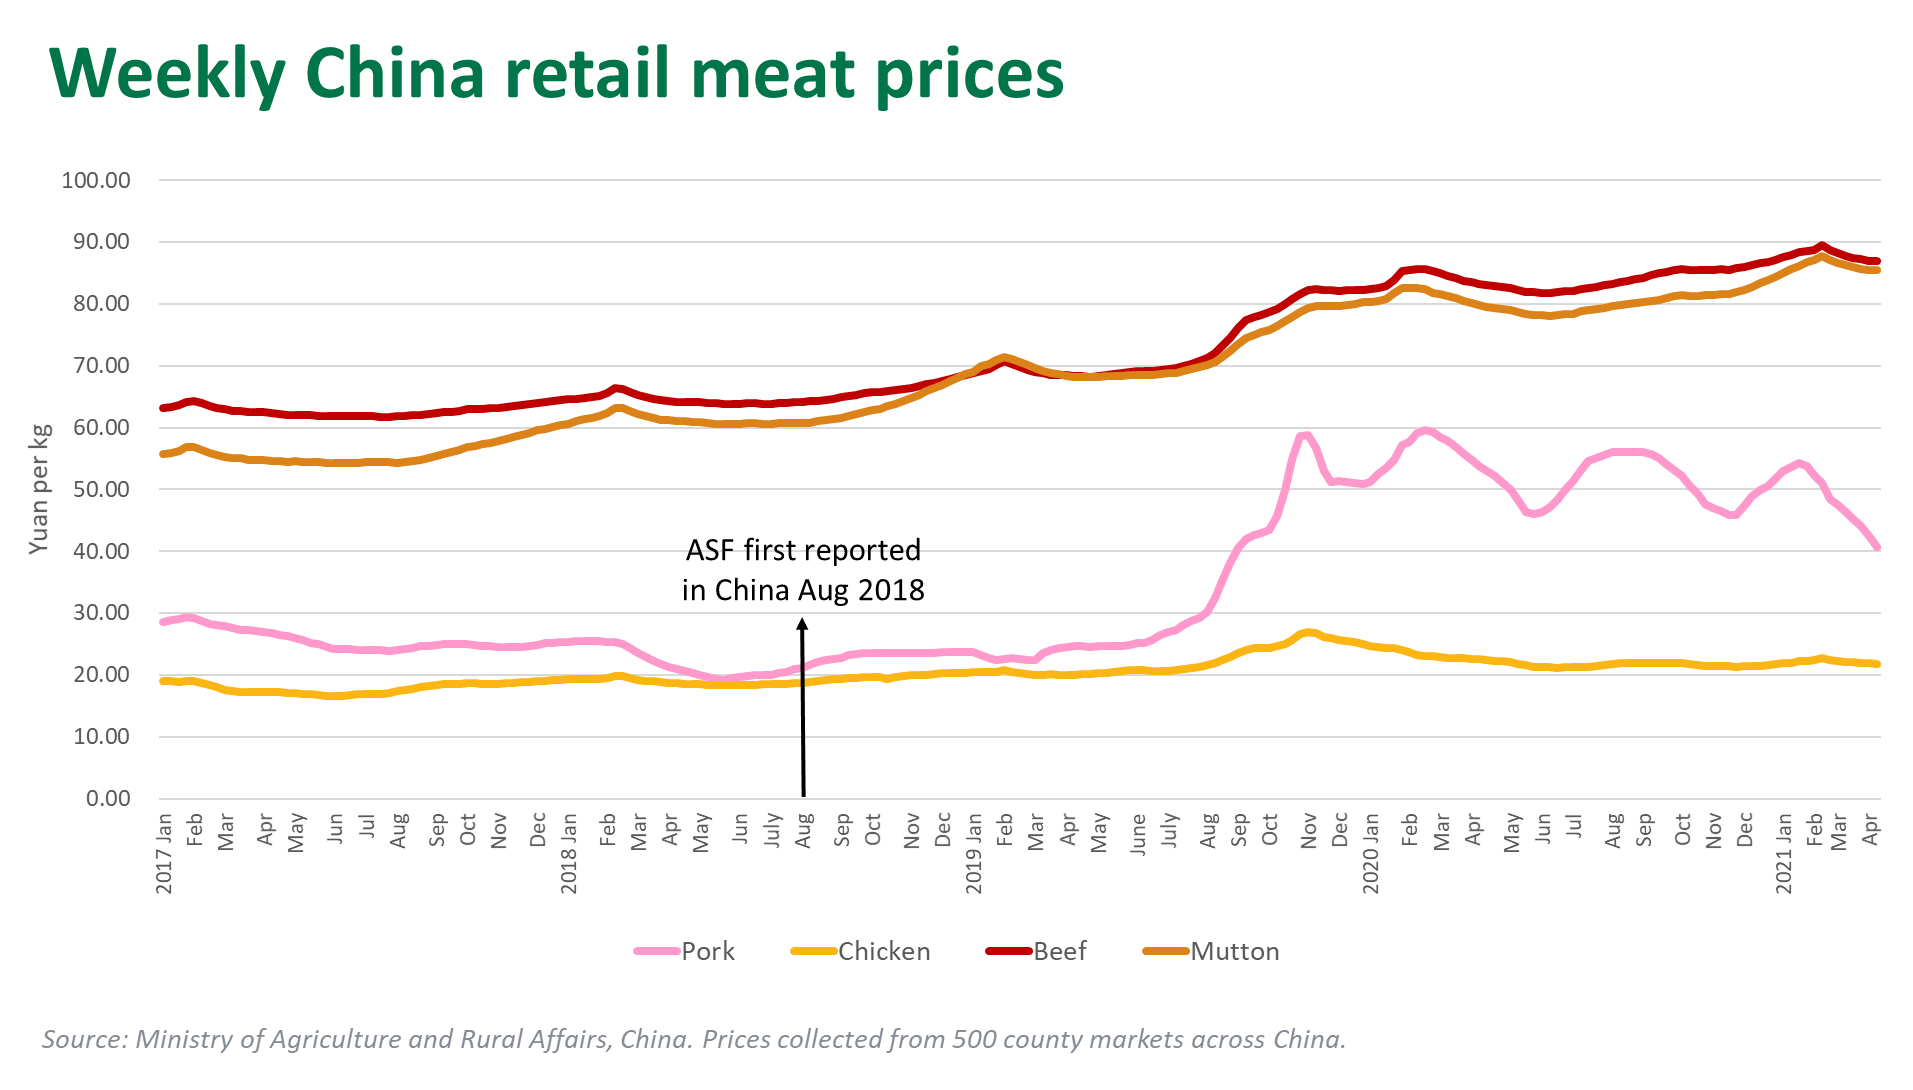 Wkly-China-retail-meat-prices-220421.png